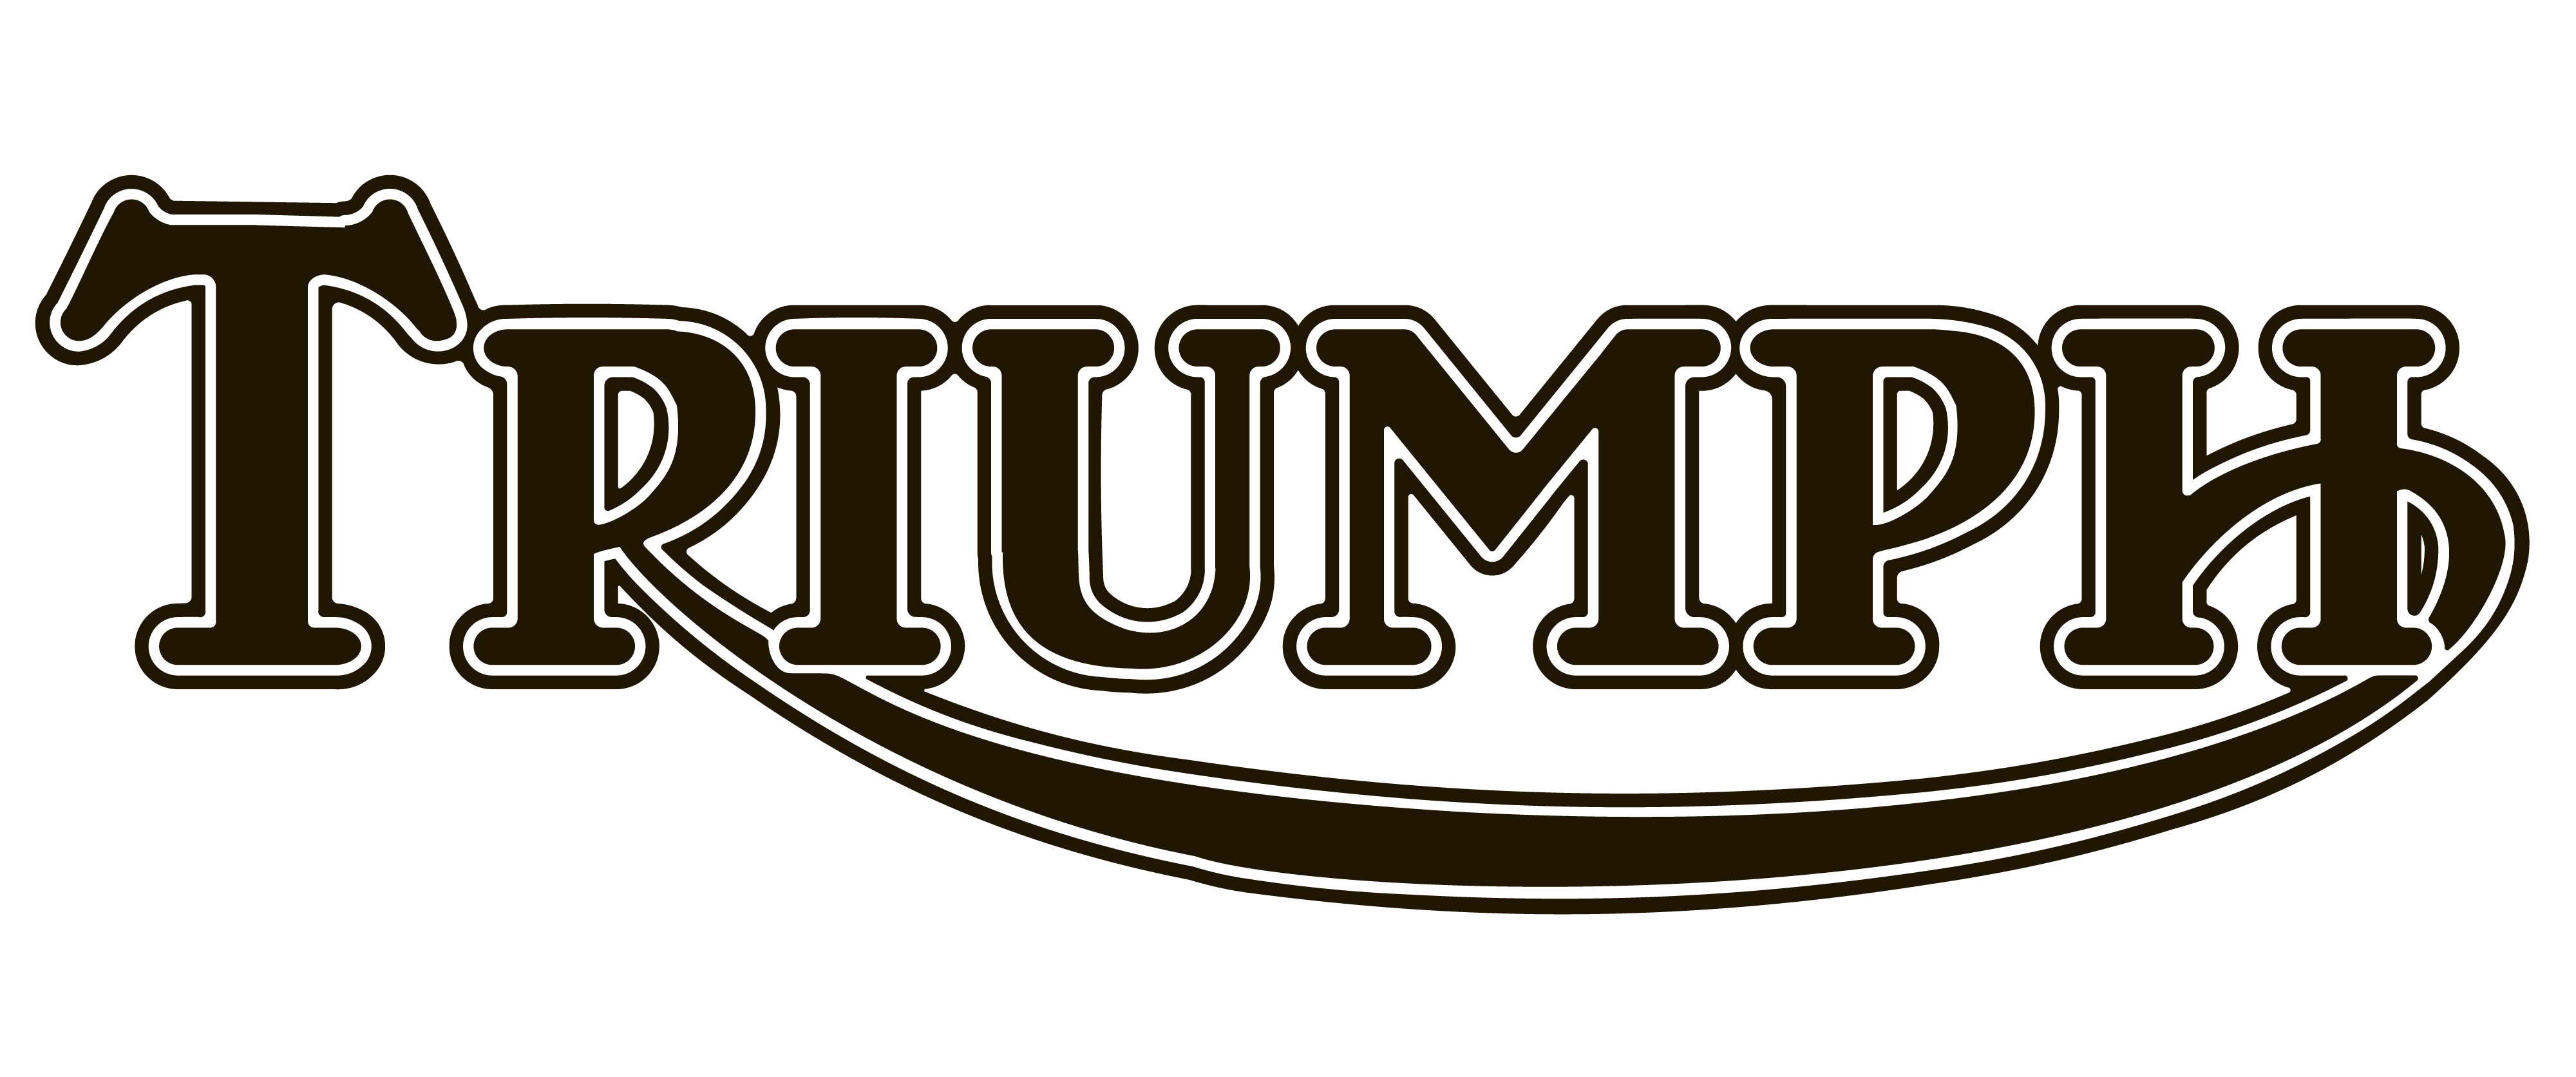 Triumph logo: history, evolution, meaning.